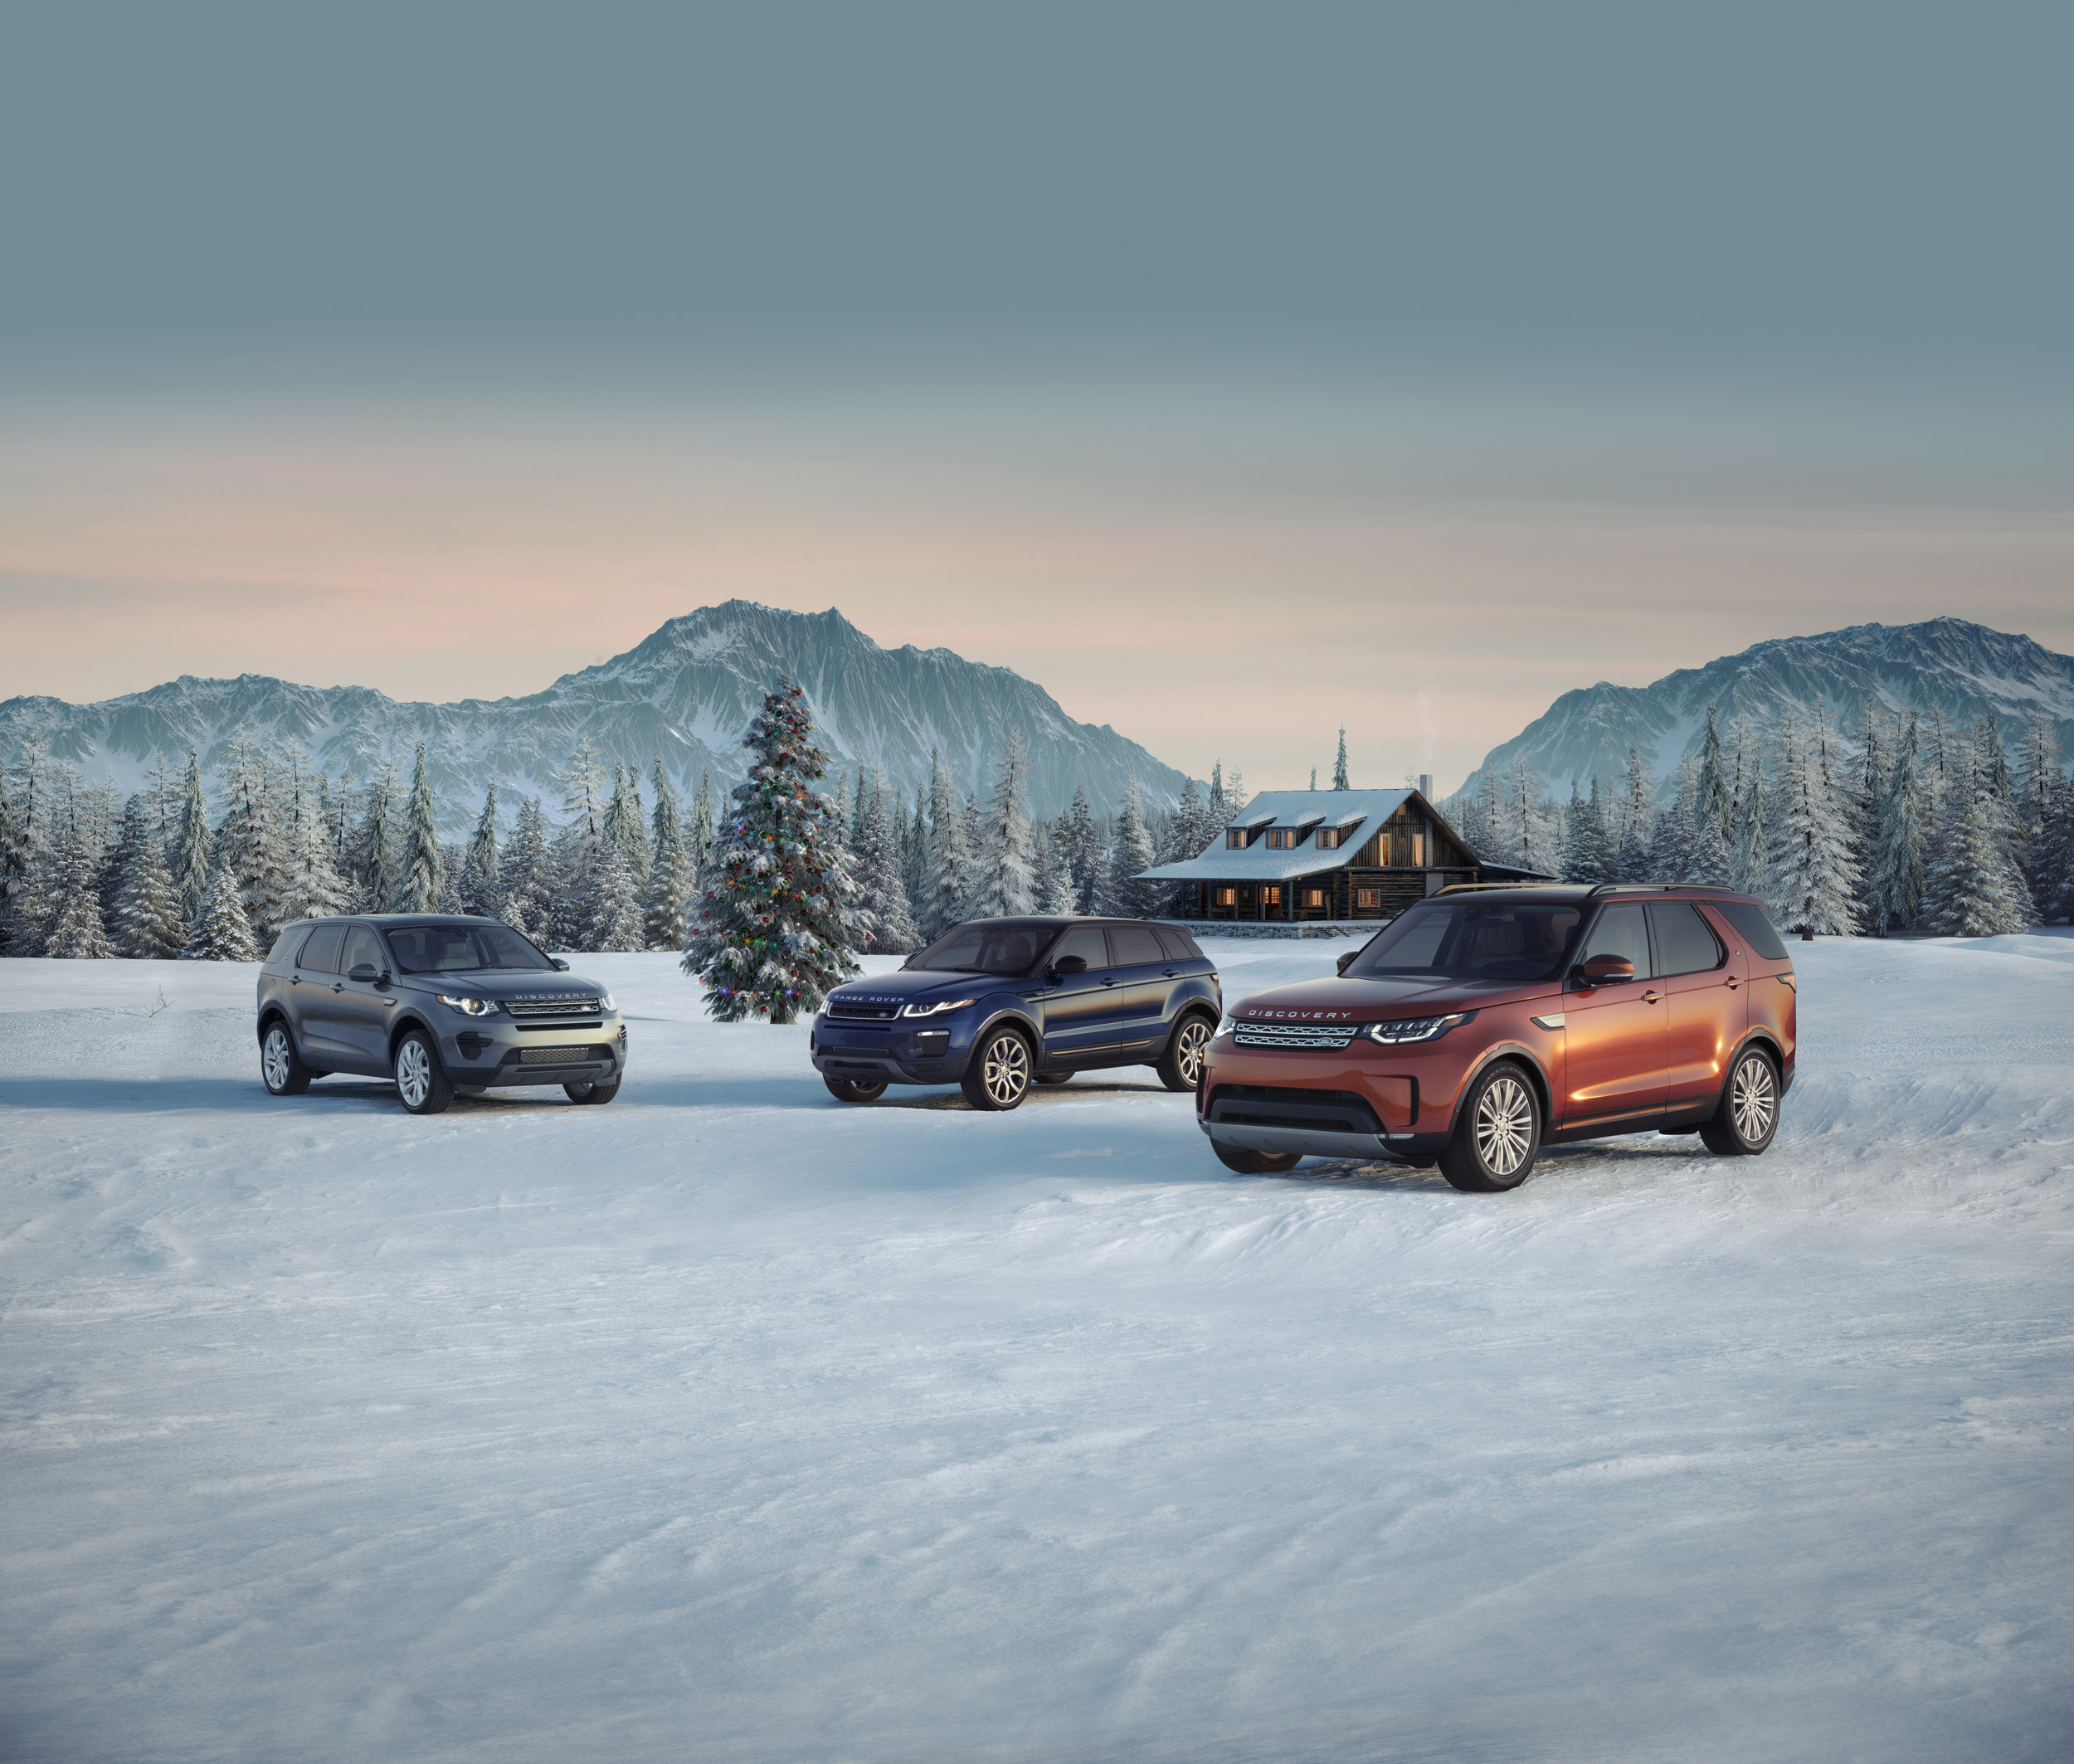 Land Rover Vehicle CGI environment by The Good Guys at Curve. Vehicle images by M&P Curtet,